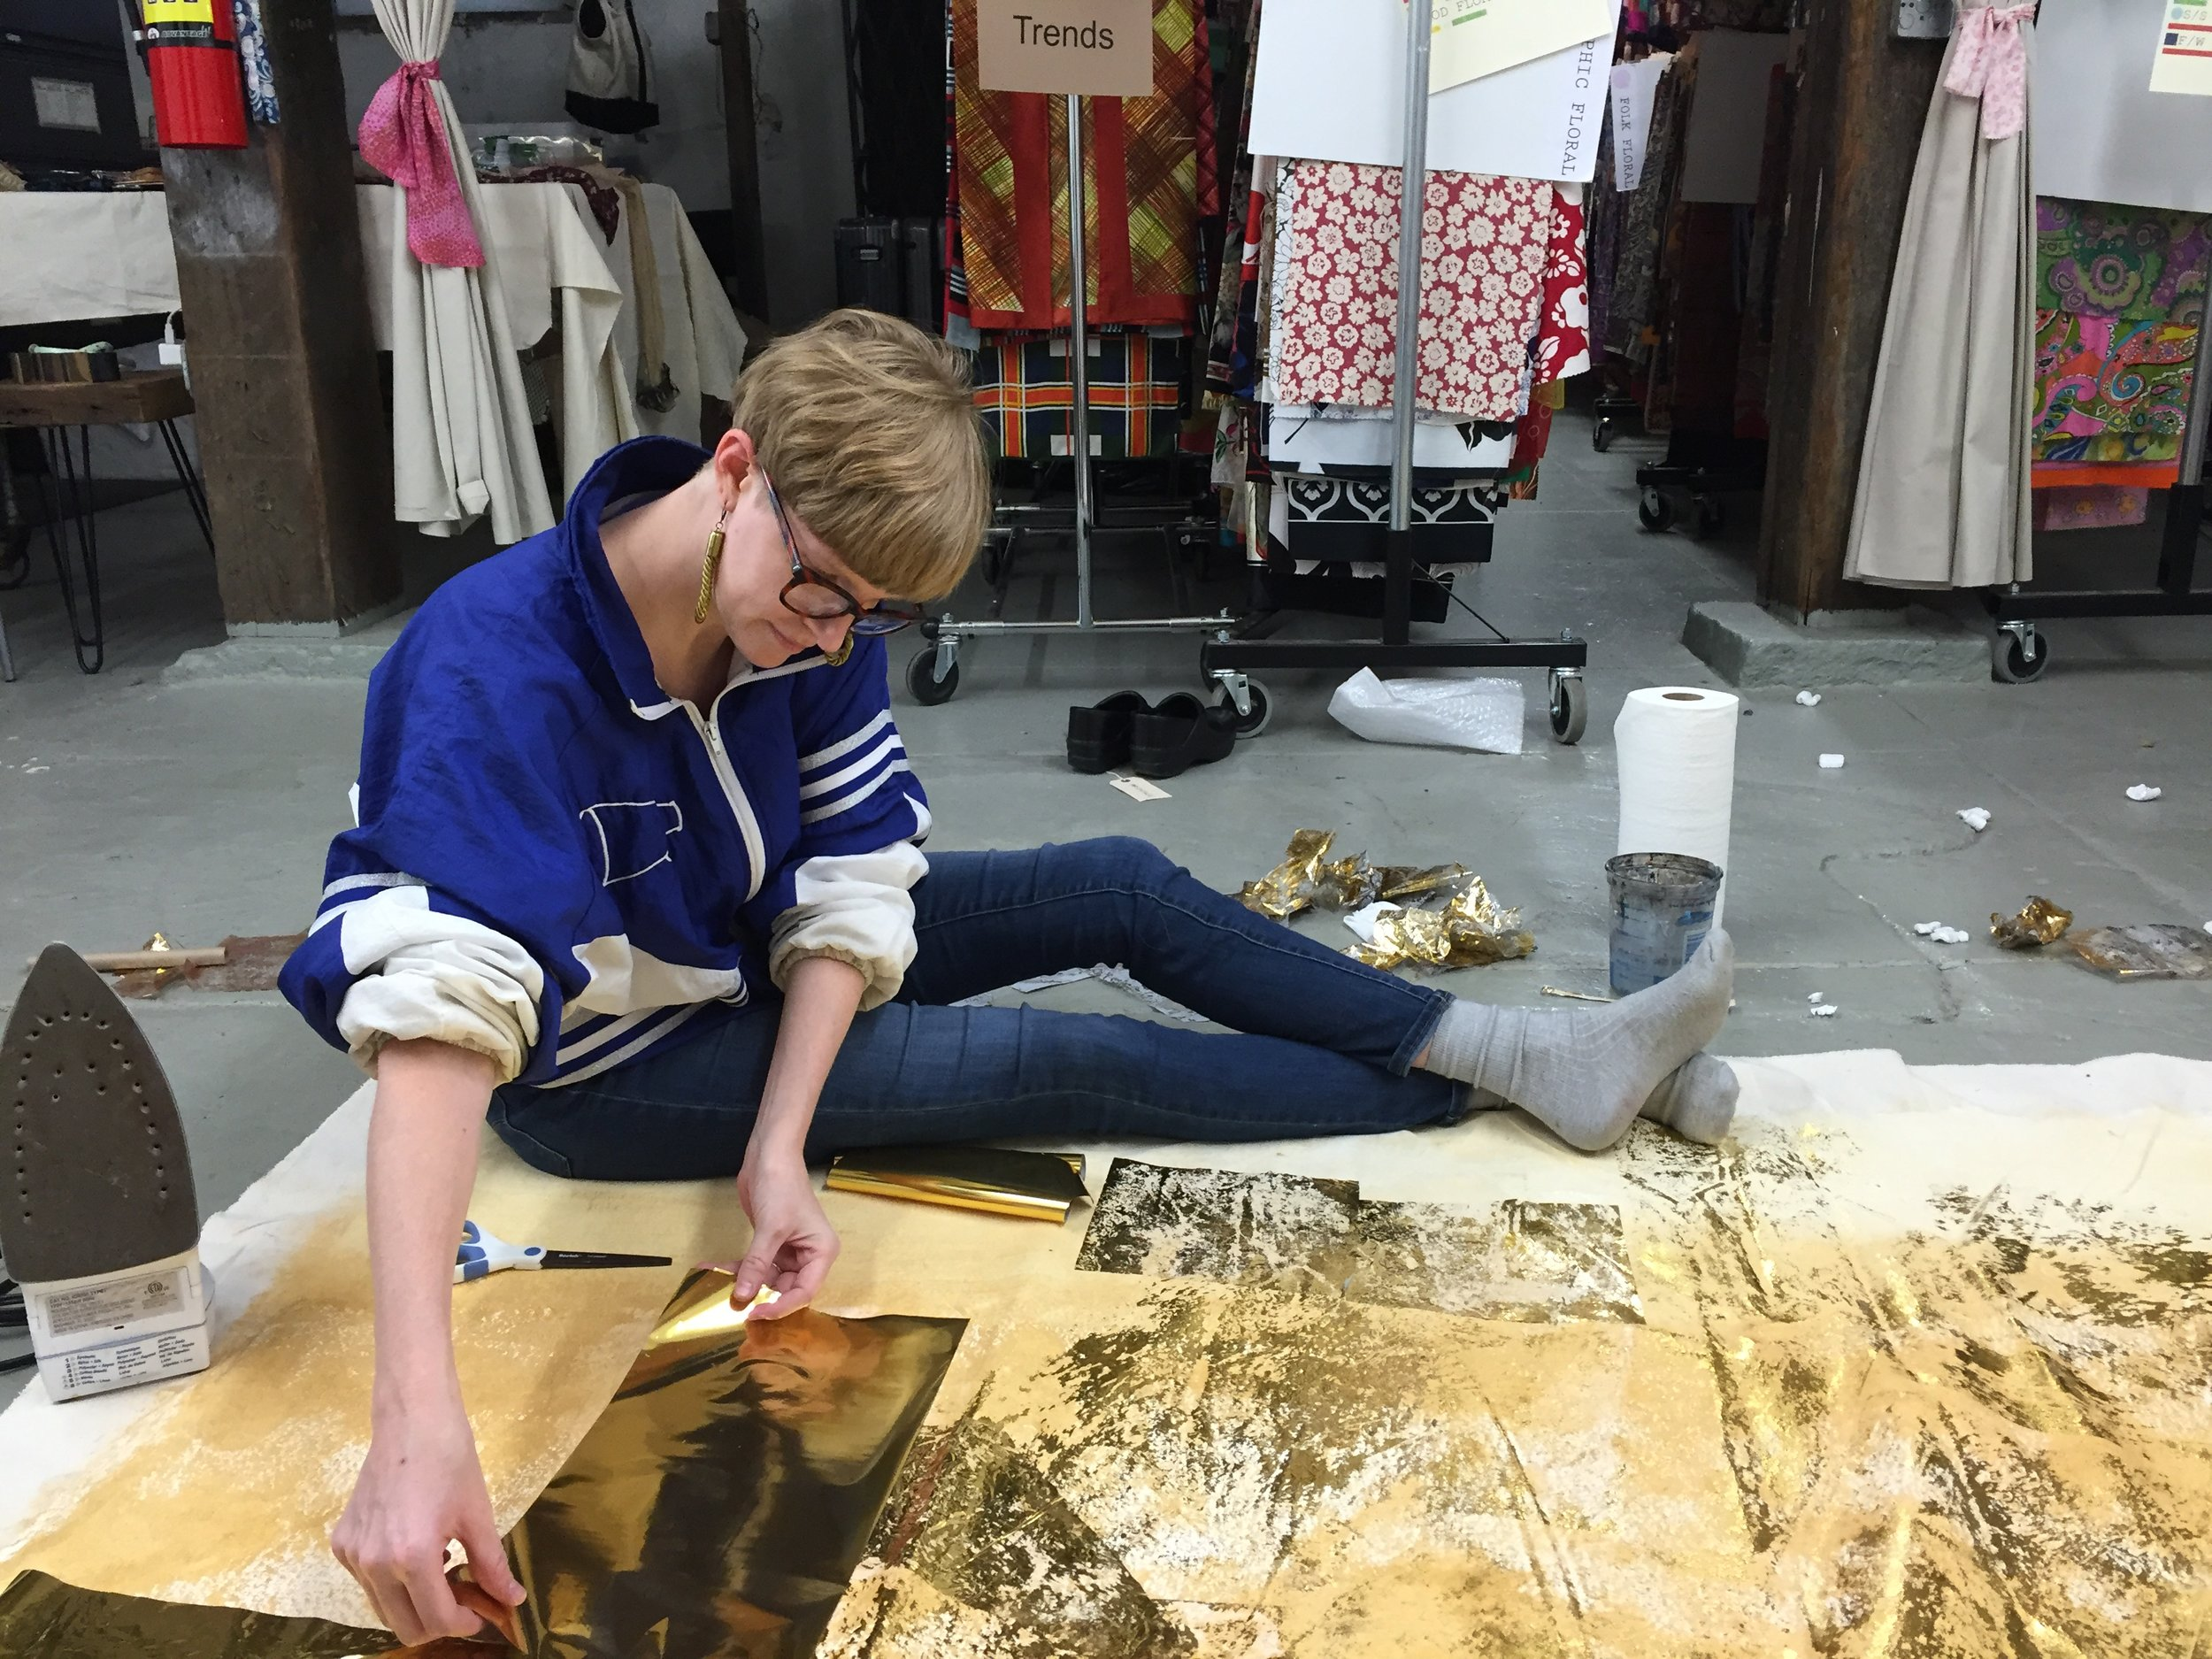 Emily Joynton applies gold foil to canvas, creating the backdrop that will hang in the PF Vintage booth at trade shows.